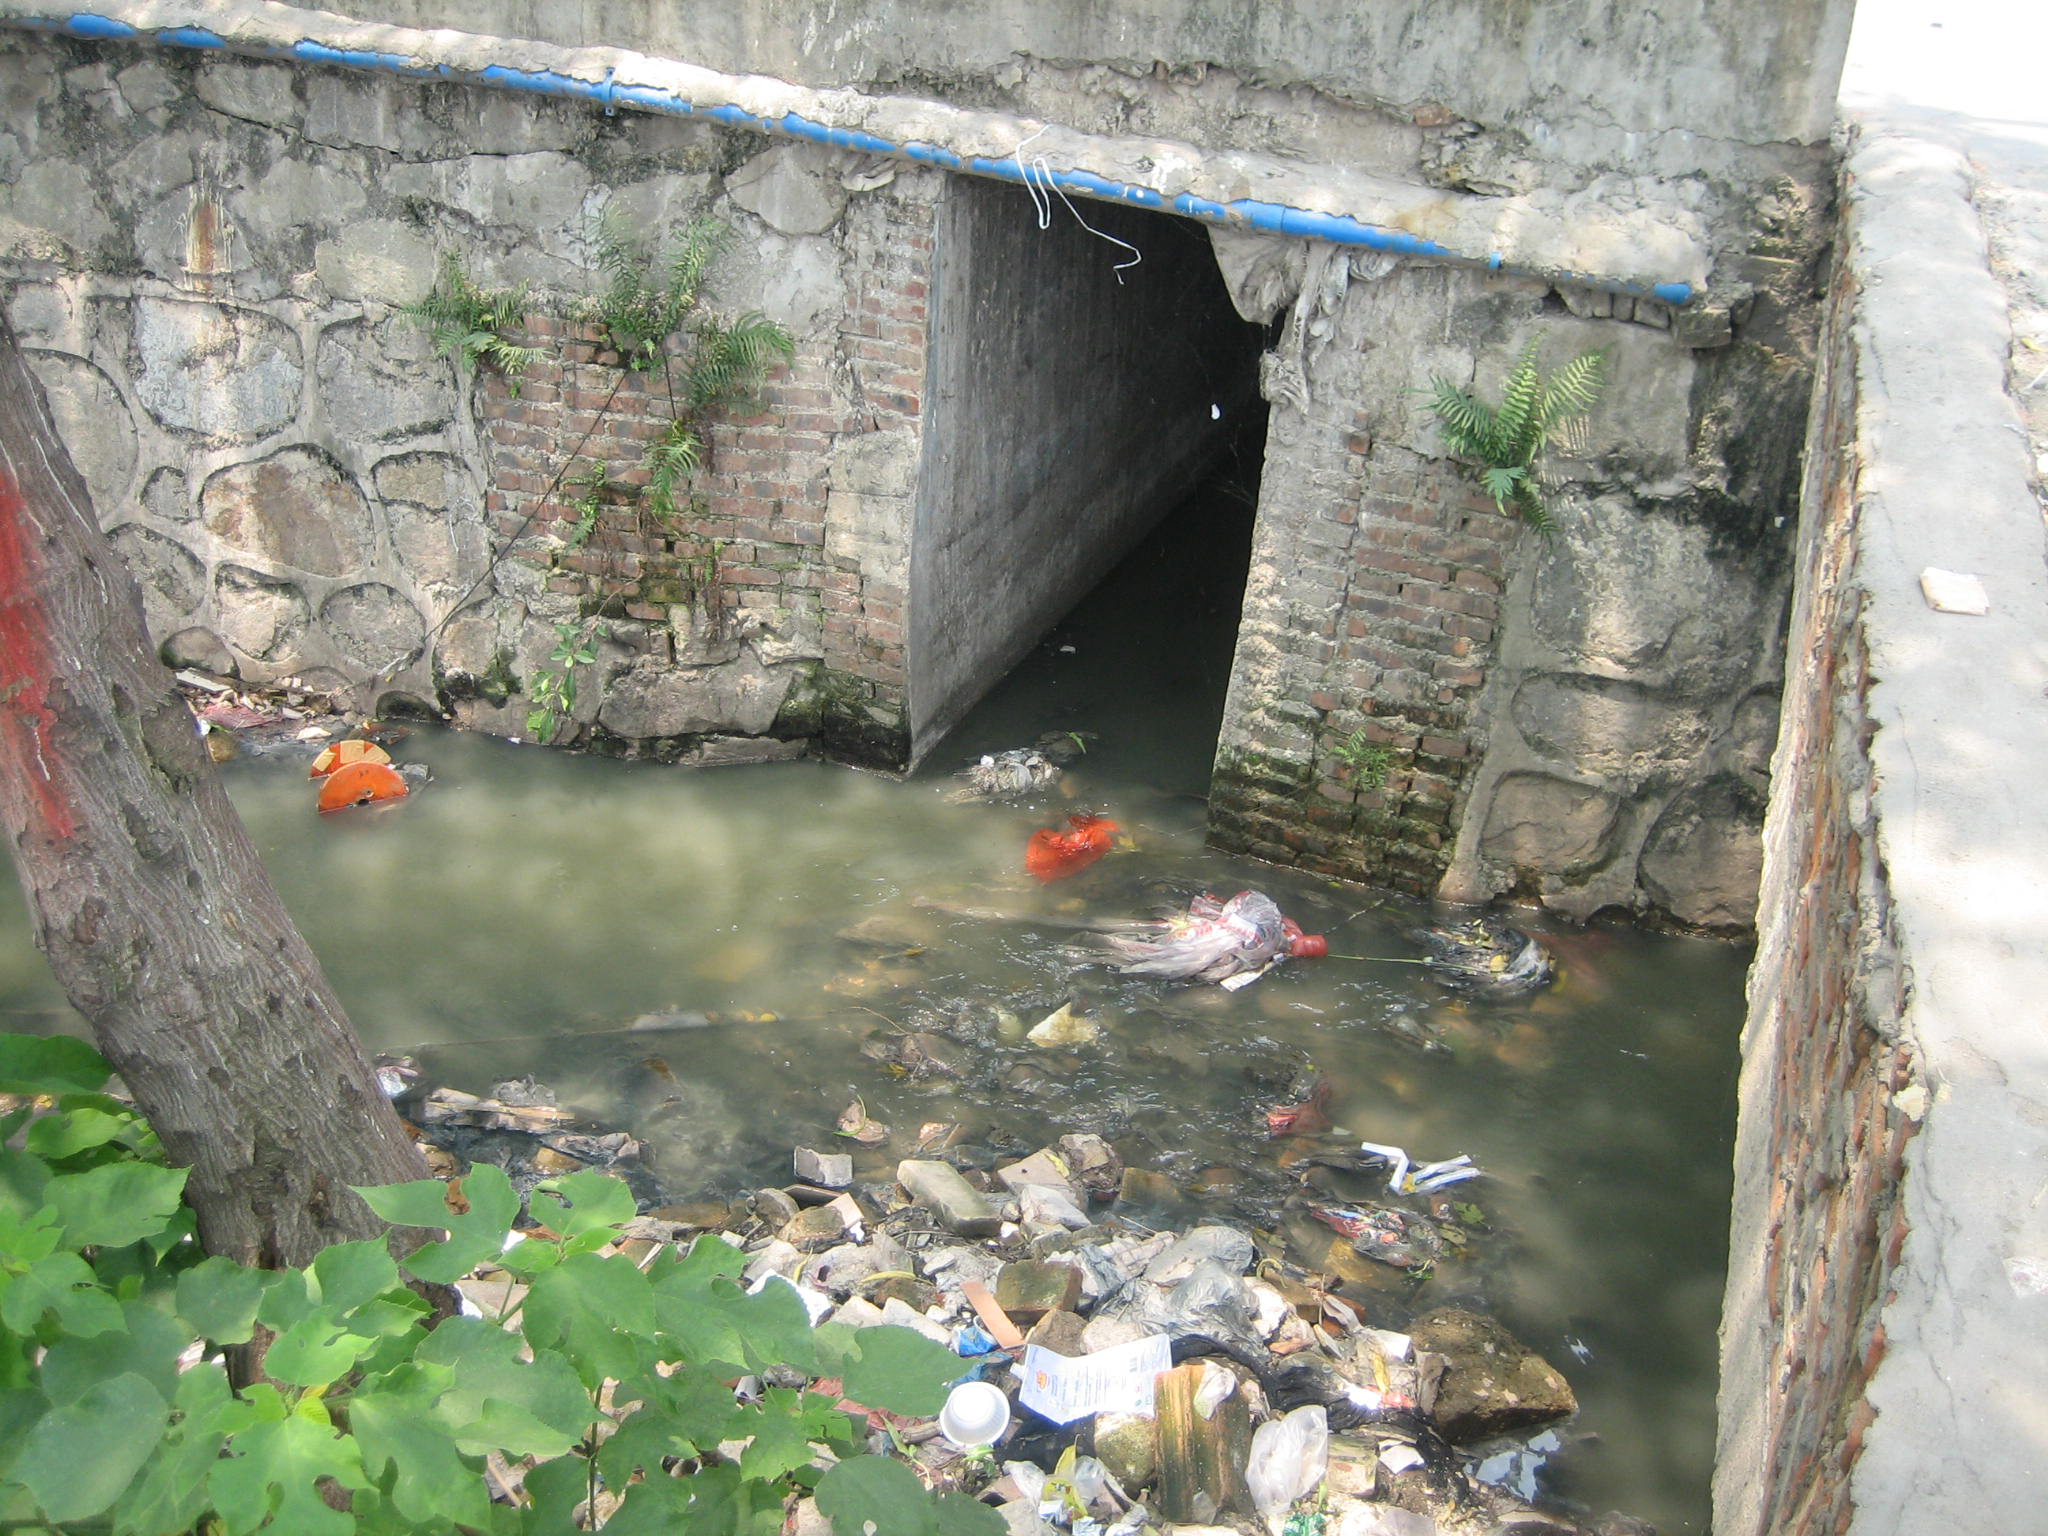 china_guangzhou_open_sewer_large